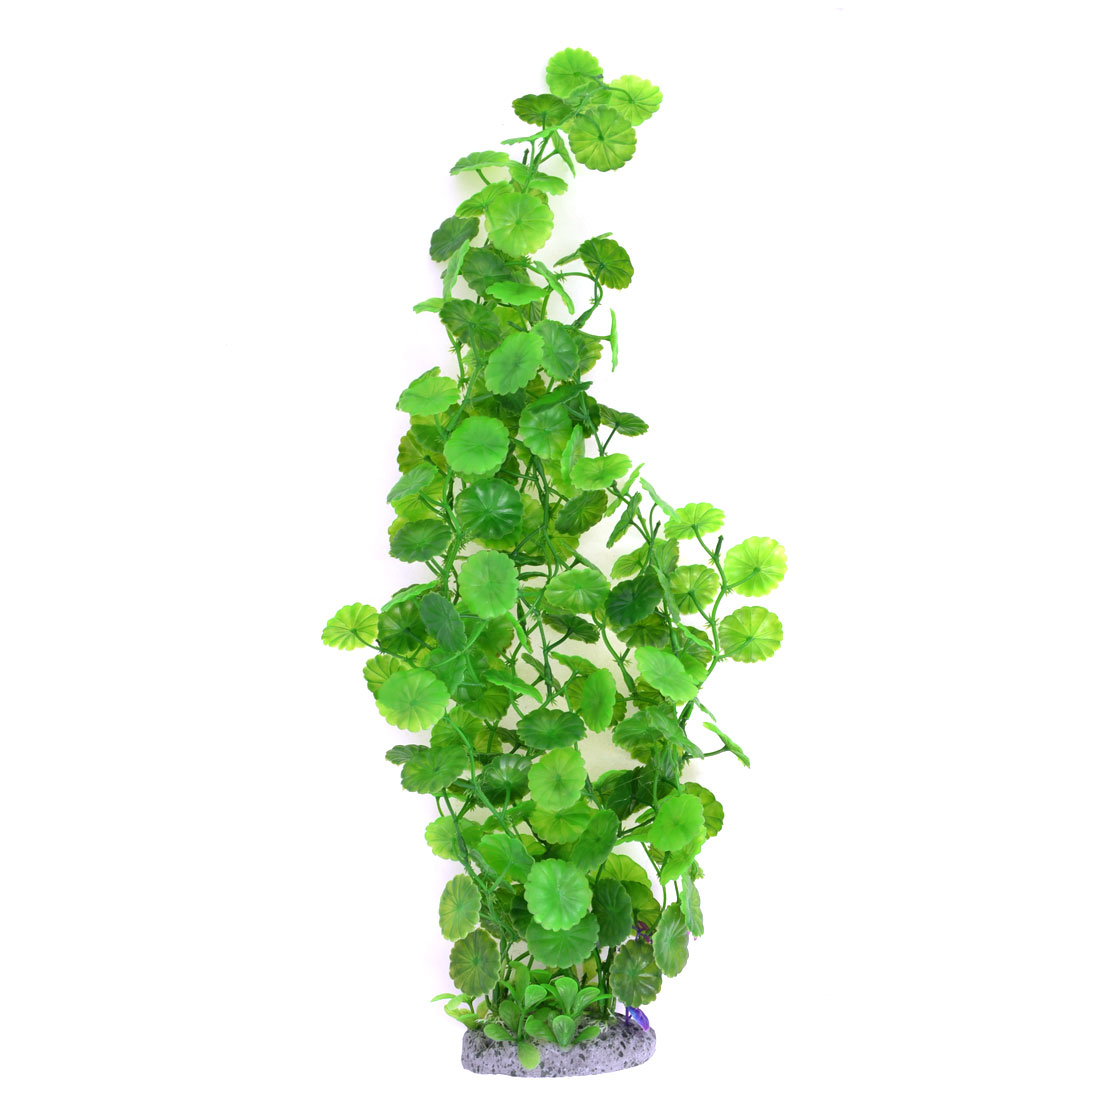 Fish Tank Green Artificial Simulation Plant Grass Ornament for Aquarium